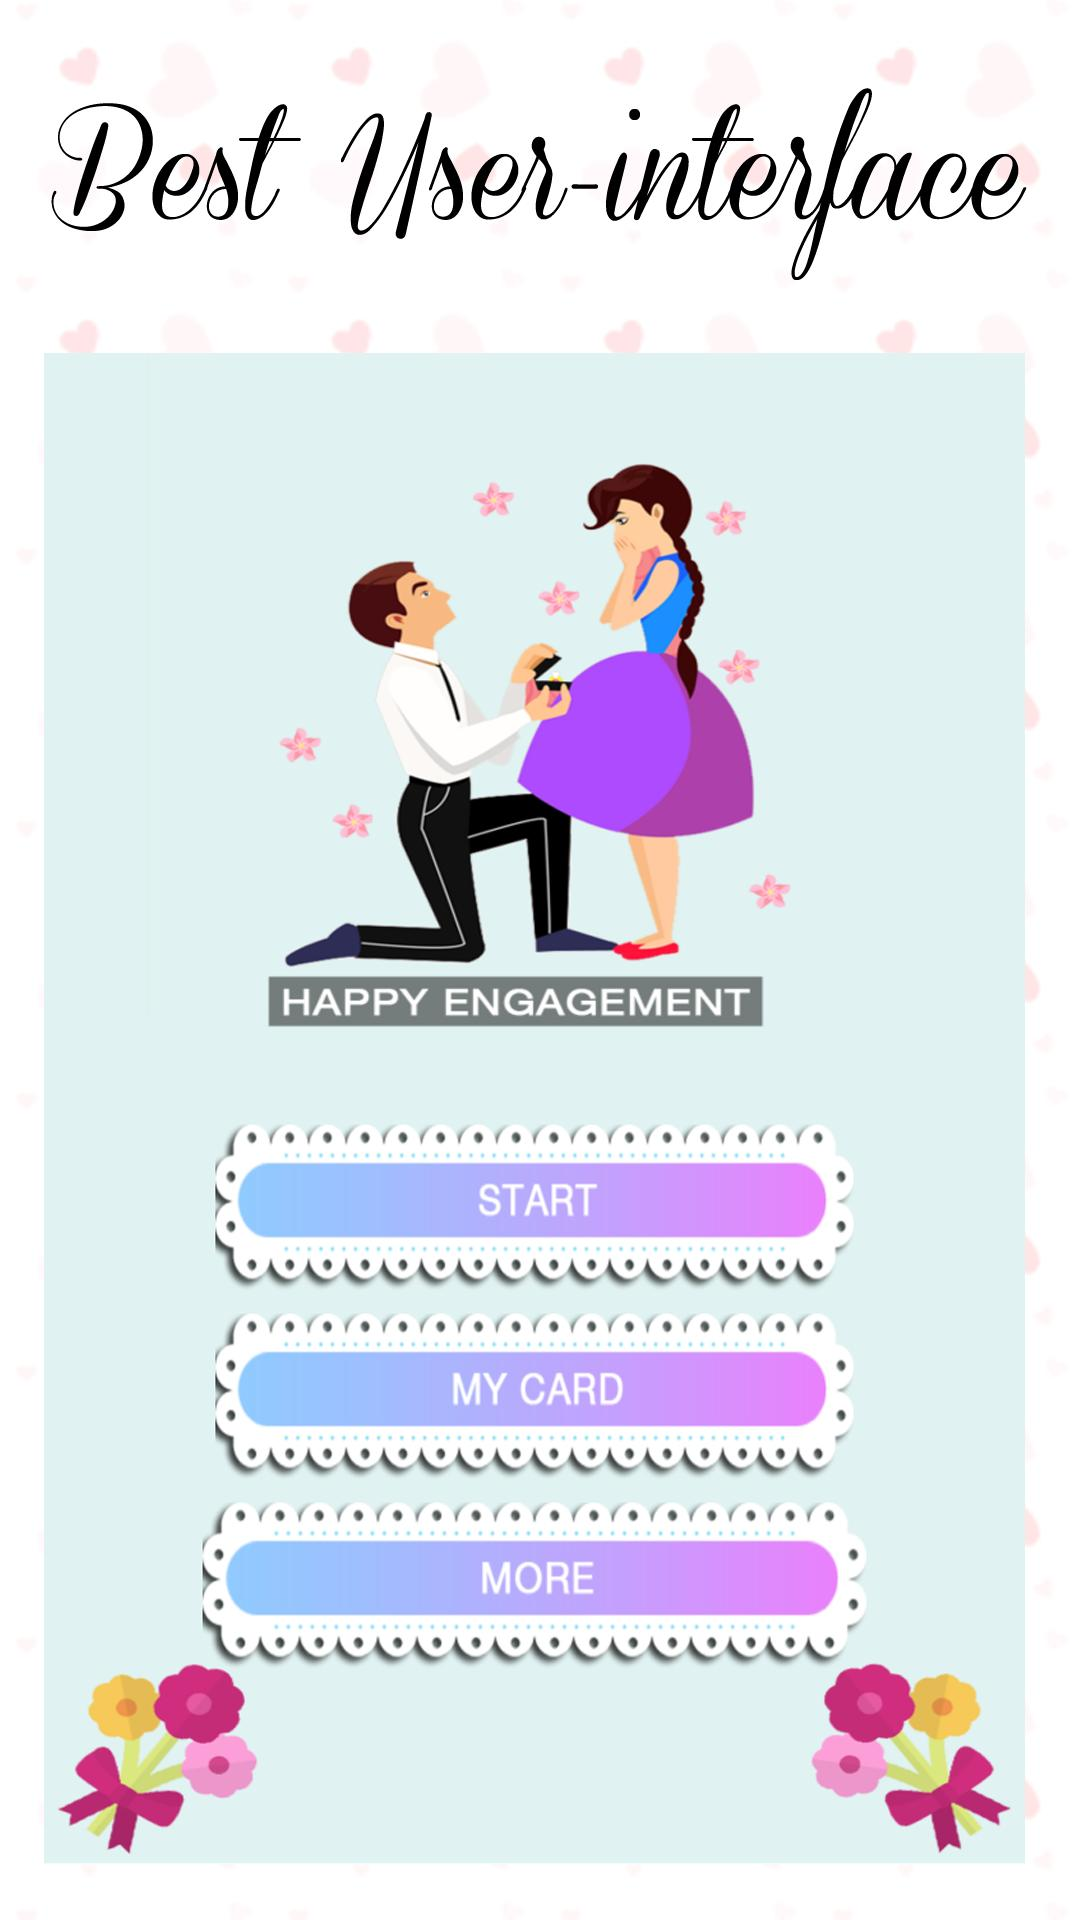 Engagement Invitation Card Maker for Android - APK Download